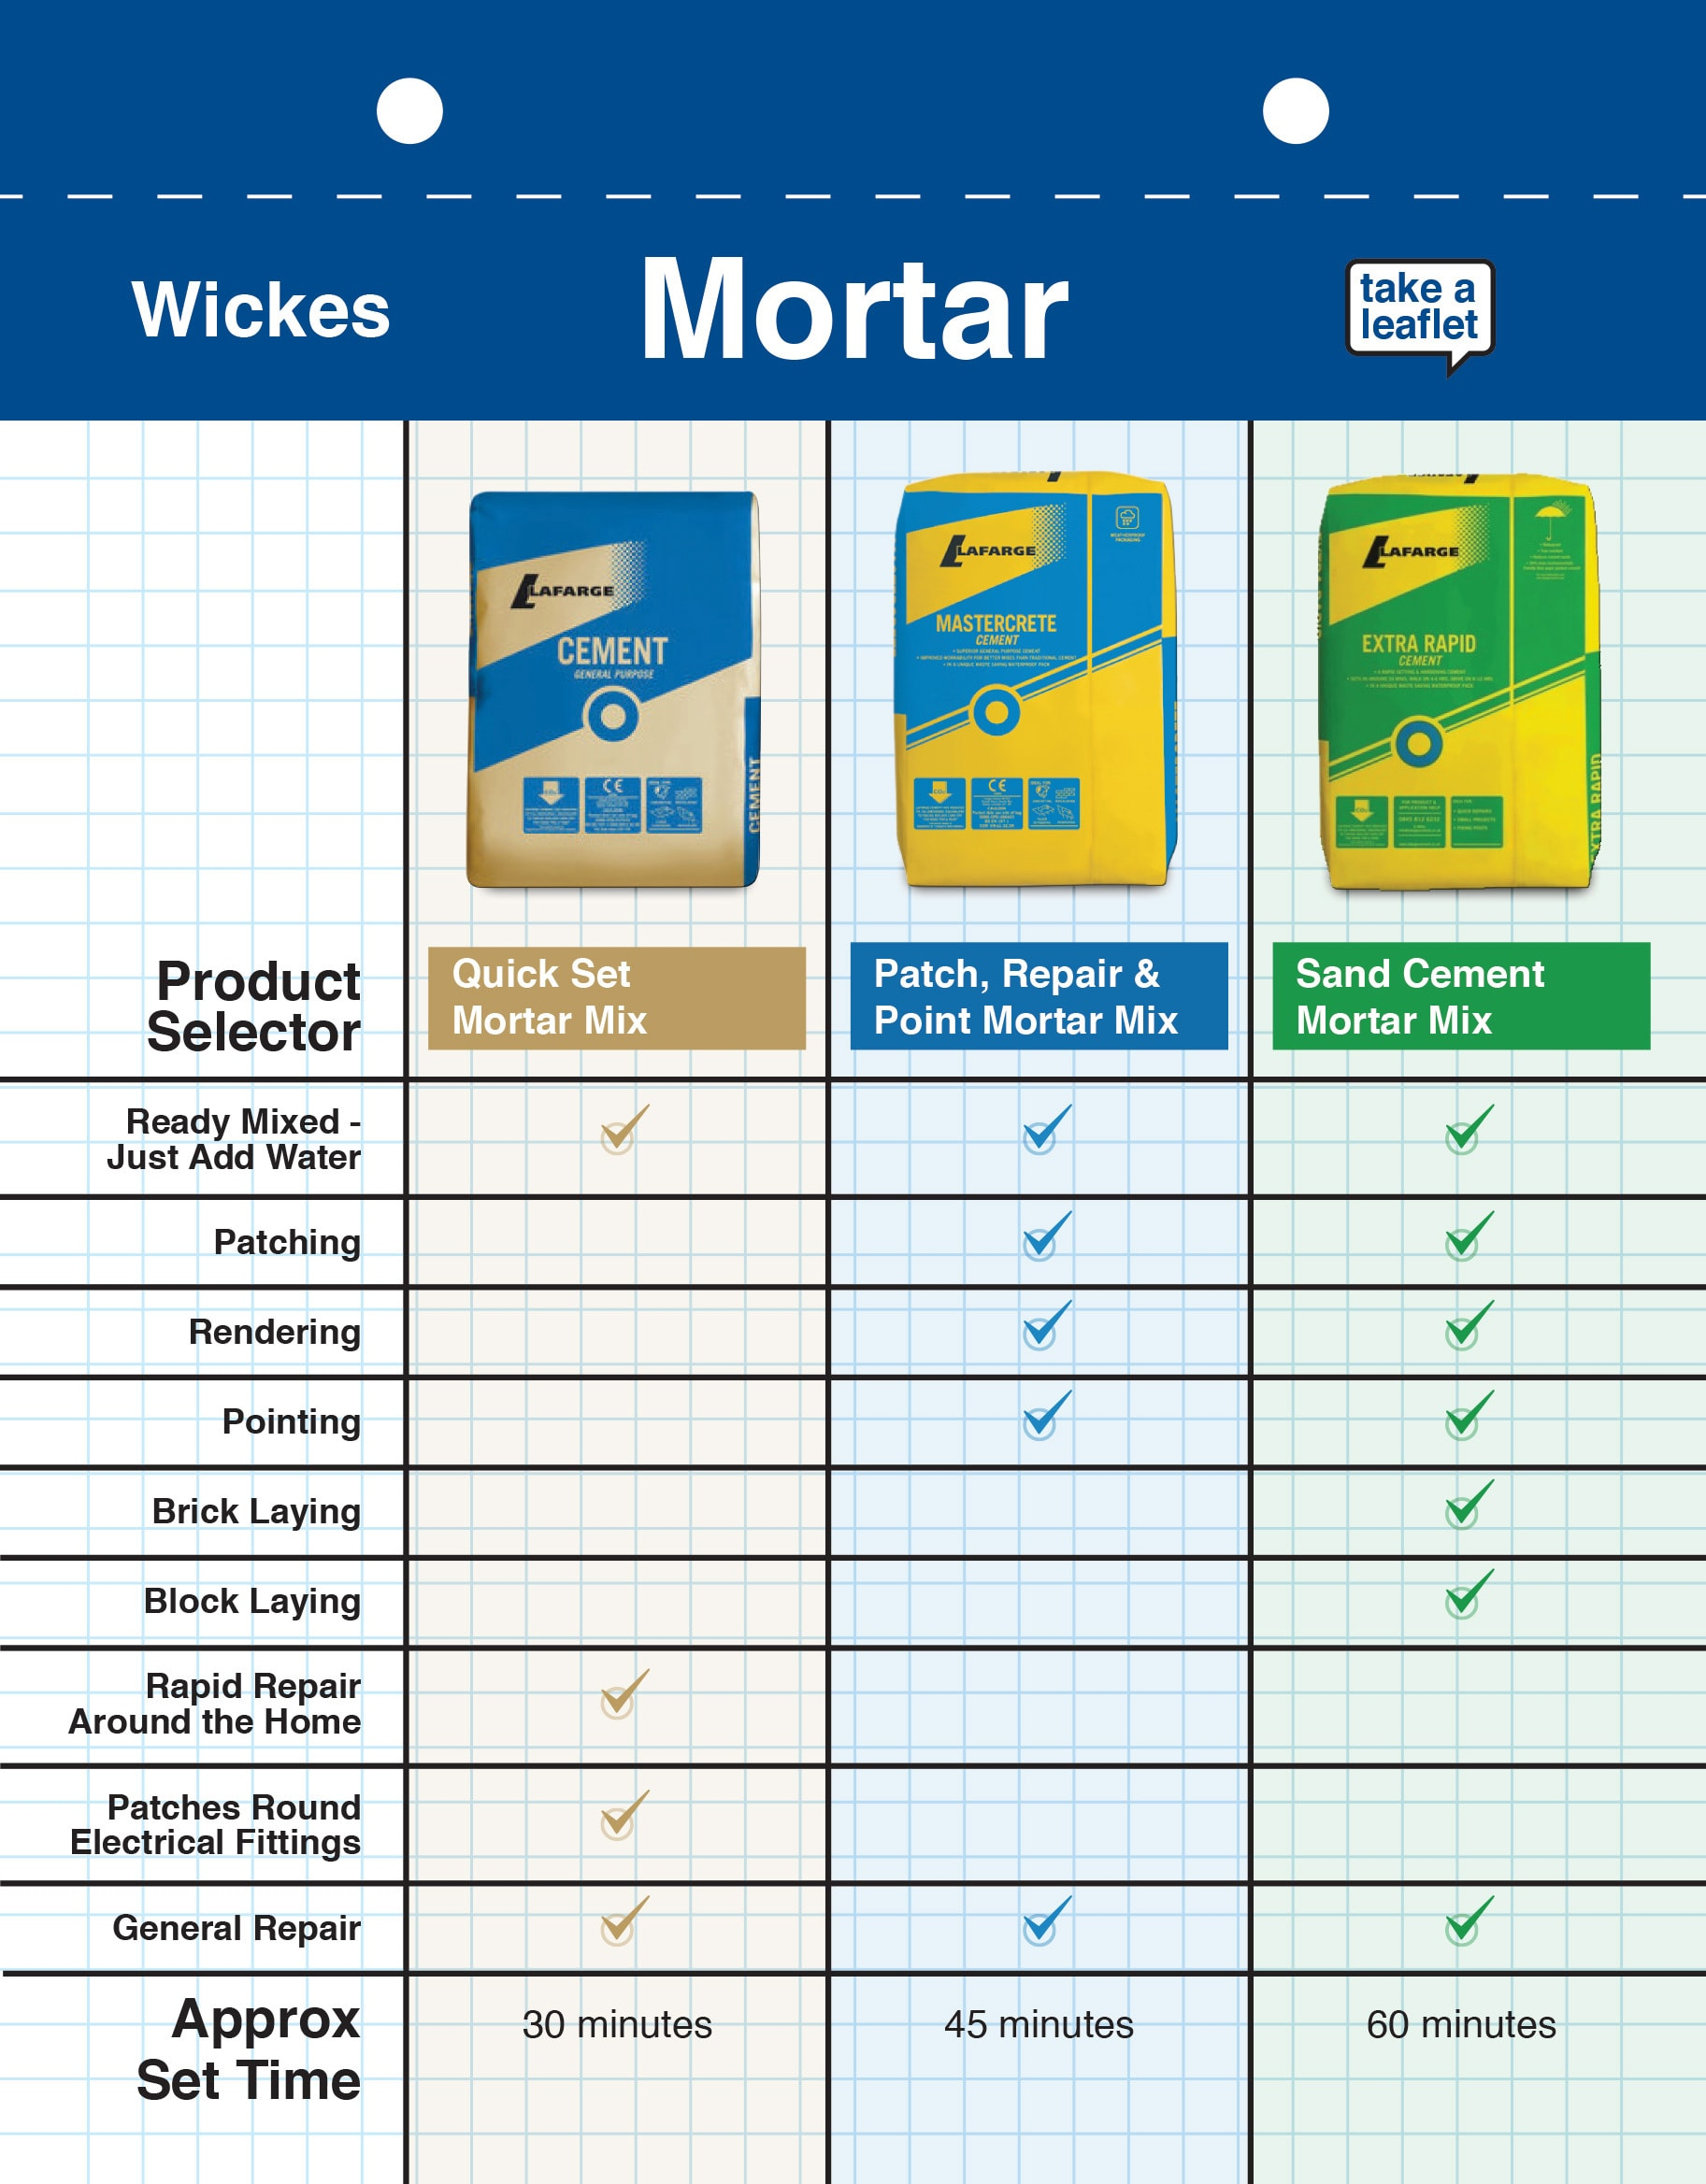 A5 Wickes Mortar selector guide with table and ticks for Wickes retail store